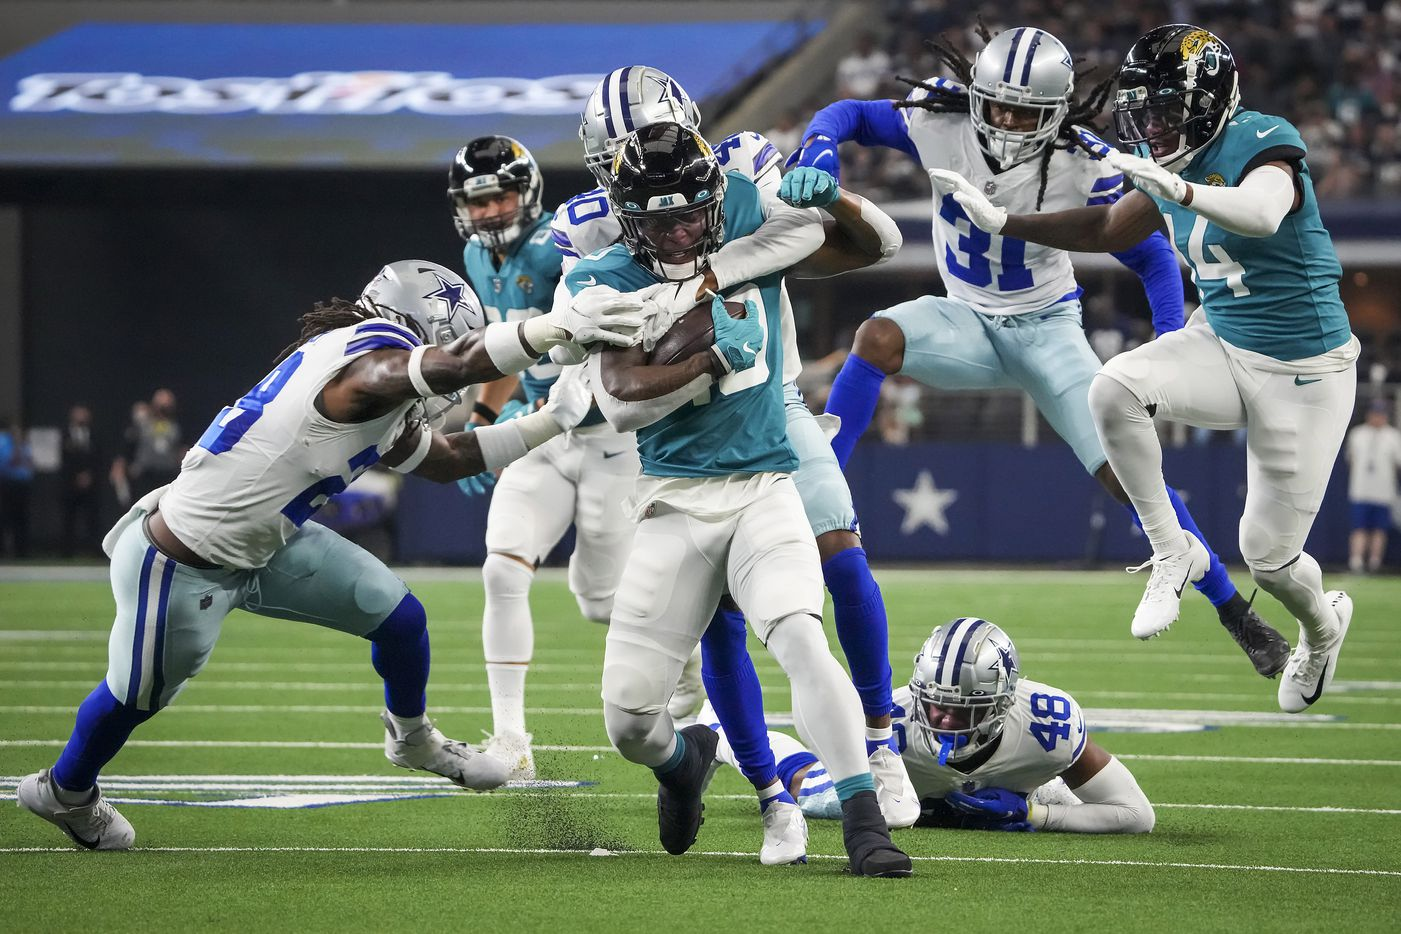 Jacksonville Jaguars wide receiver Laviska Shenault Jr. (10) is brought down by Dallas Cowboys free safety Malik Hooker (28) and cornerback Nahshon Wright (40) as linebacker Jabril Cox (48) and cornerback Maurice Canady (31) trail on the play during the first half of a preseason NFL football game at AT&T Stadium on Sunday, Aug. 29, 2021, in Arlington. (Smiley N. Pool/The Dallas Morning News)